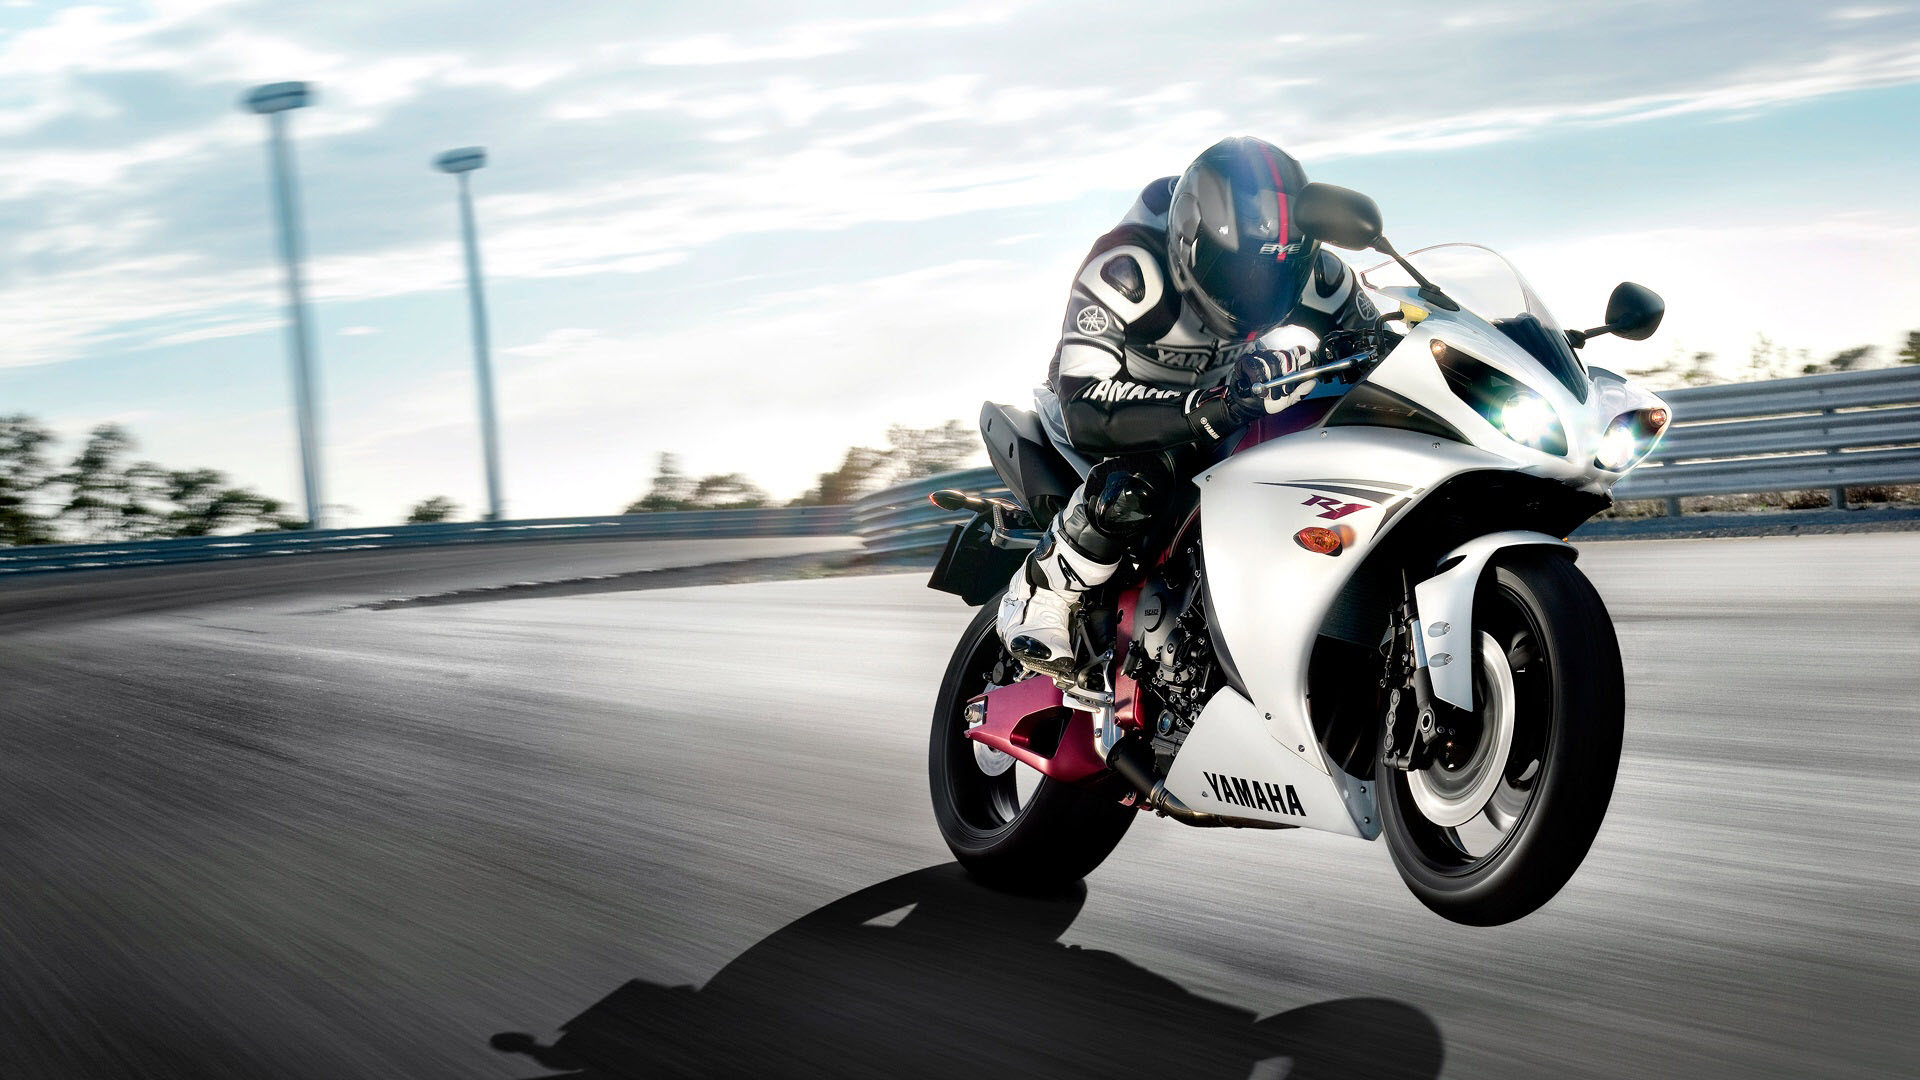 Wallpapers Of Bikes And Cars